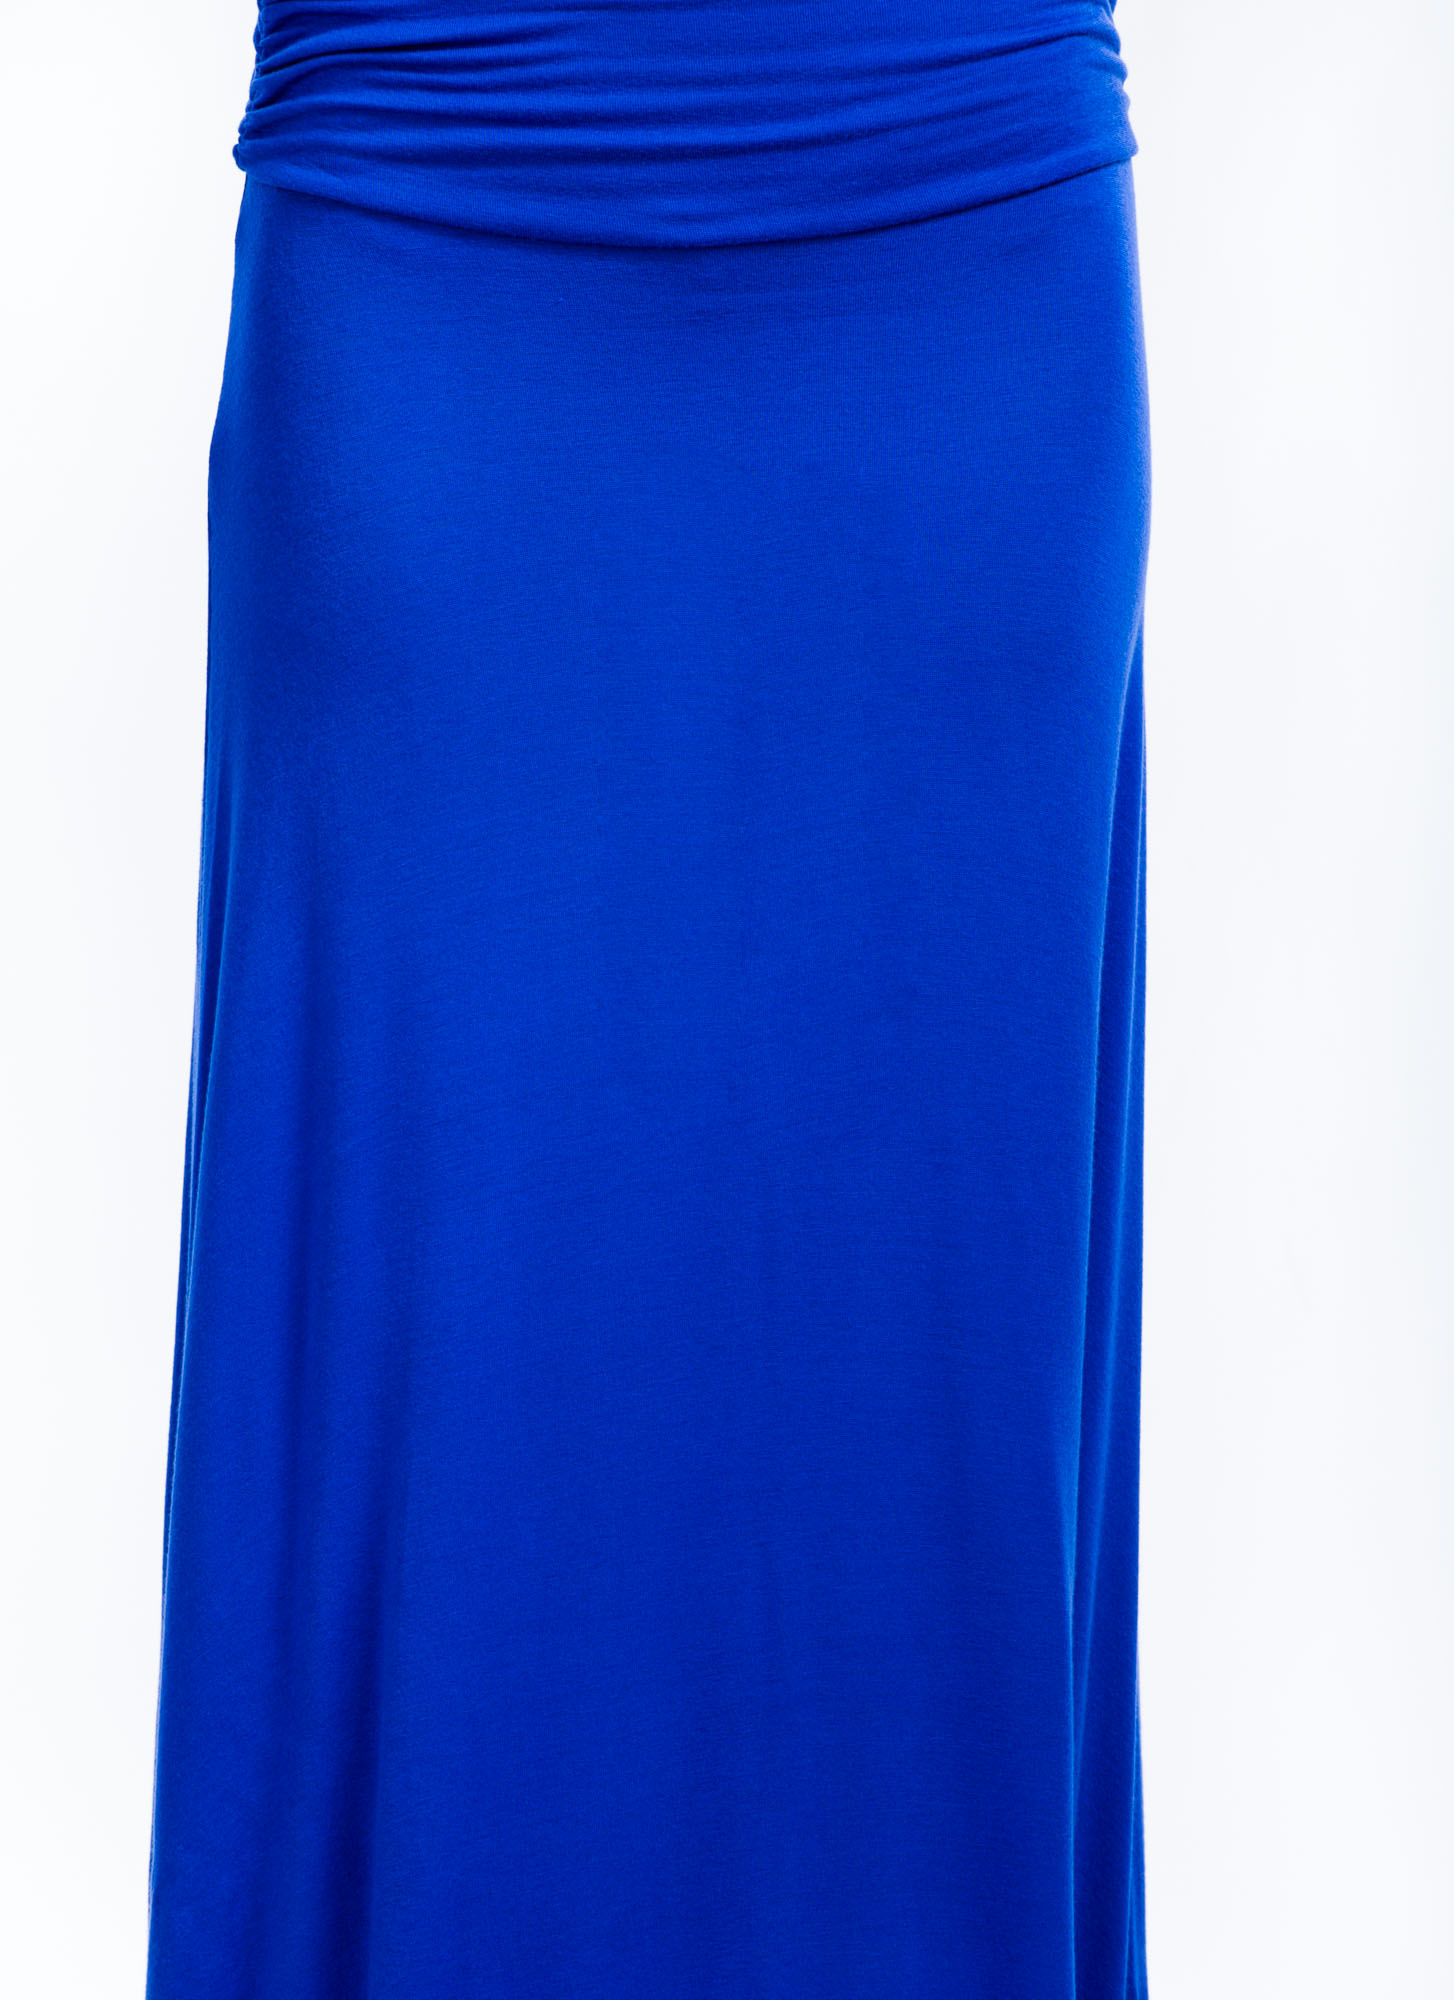 Folded Maxi Skirt ROYALBLUE